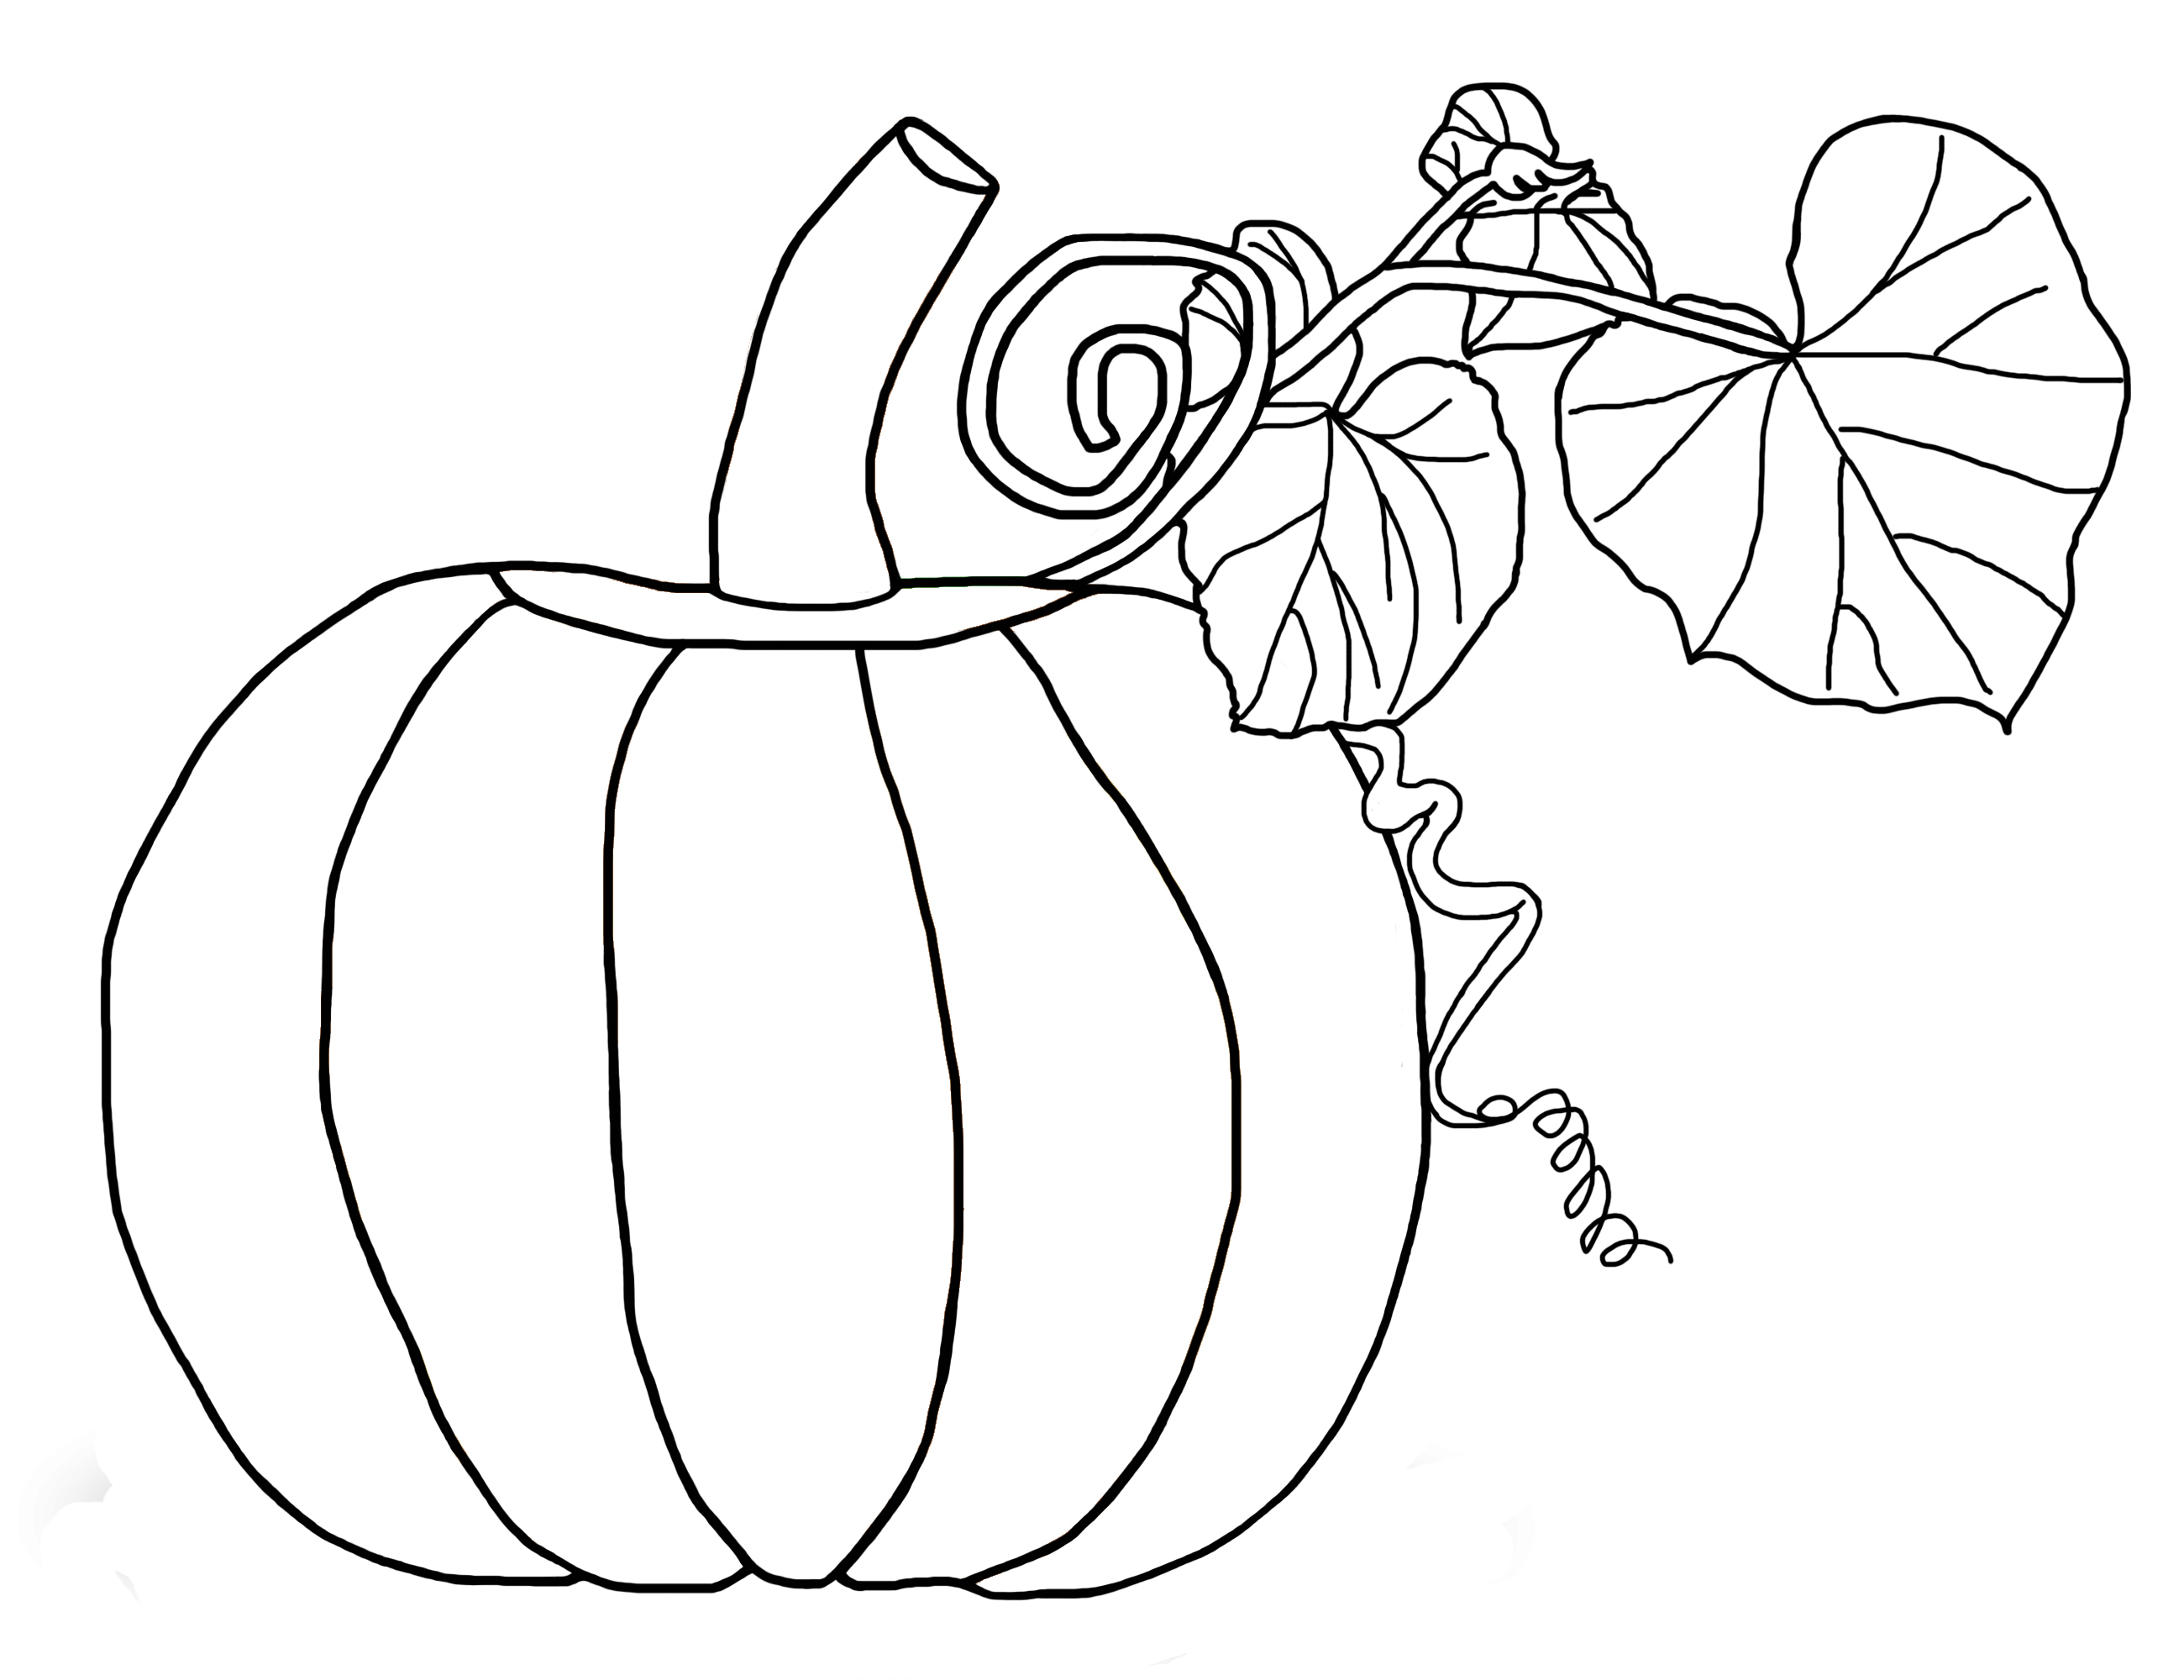 coloring page of a pumpkin free printable pumpkin coloring pages for kids of coloring pumpkin page a